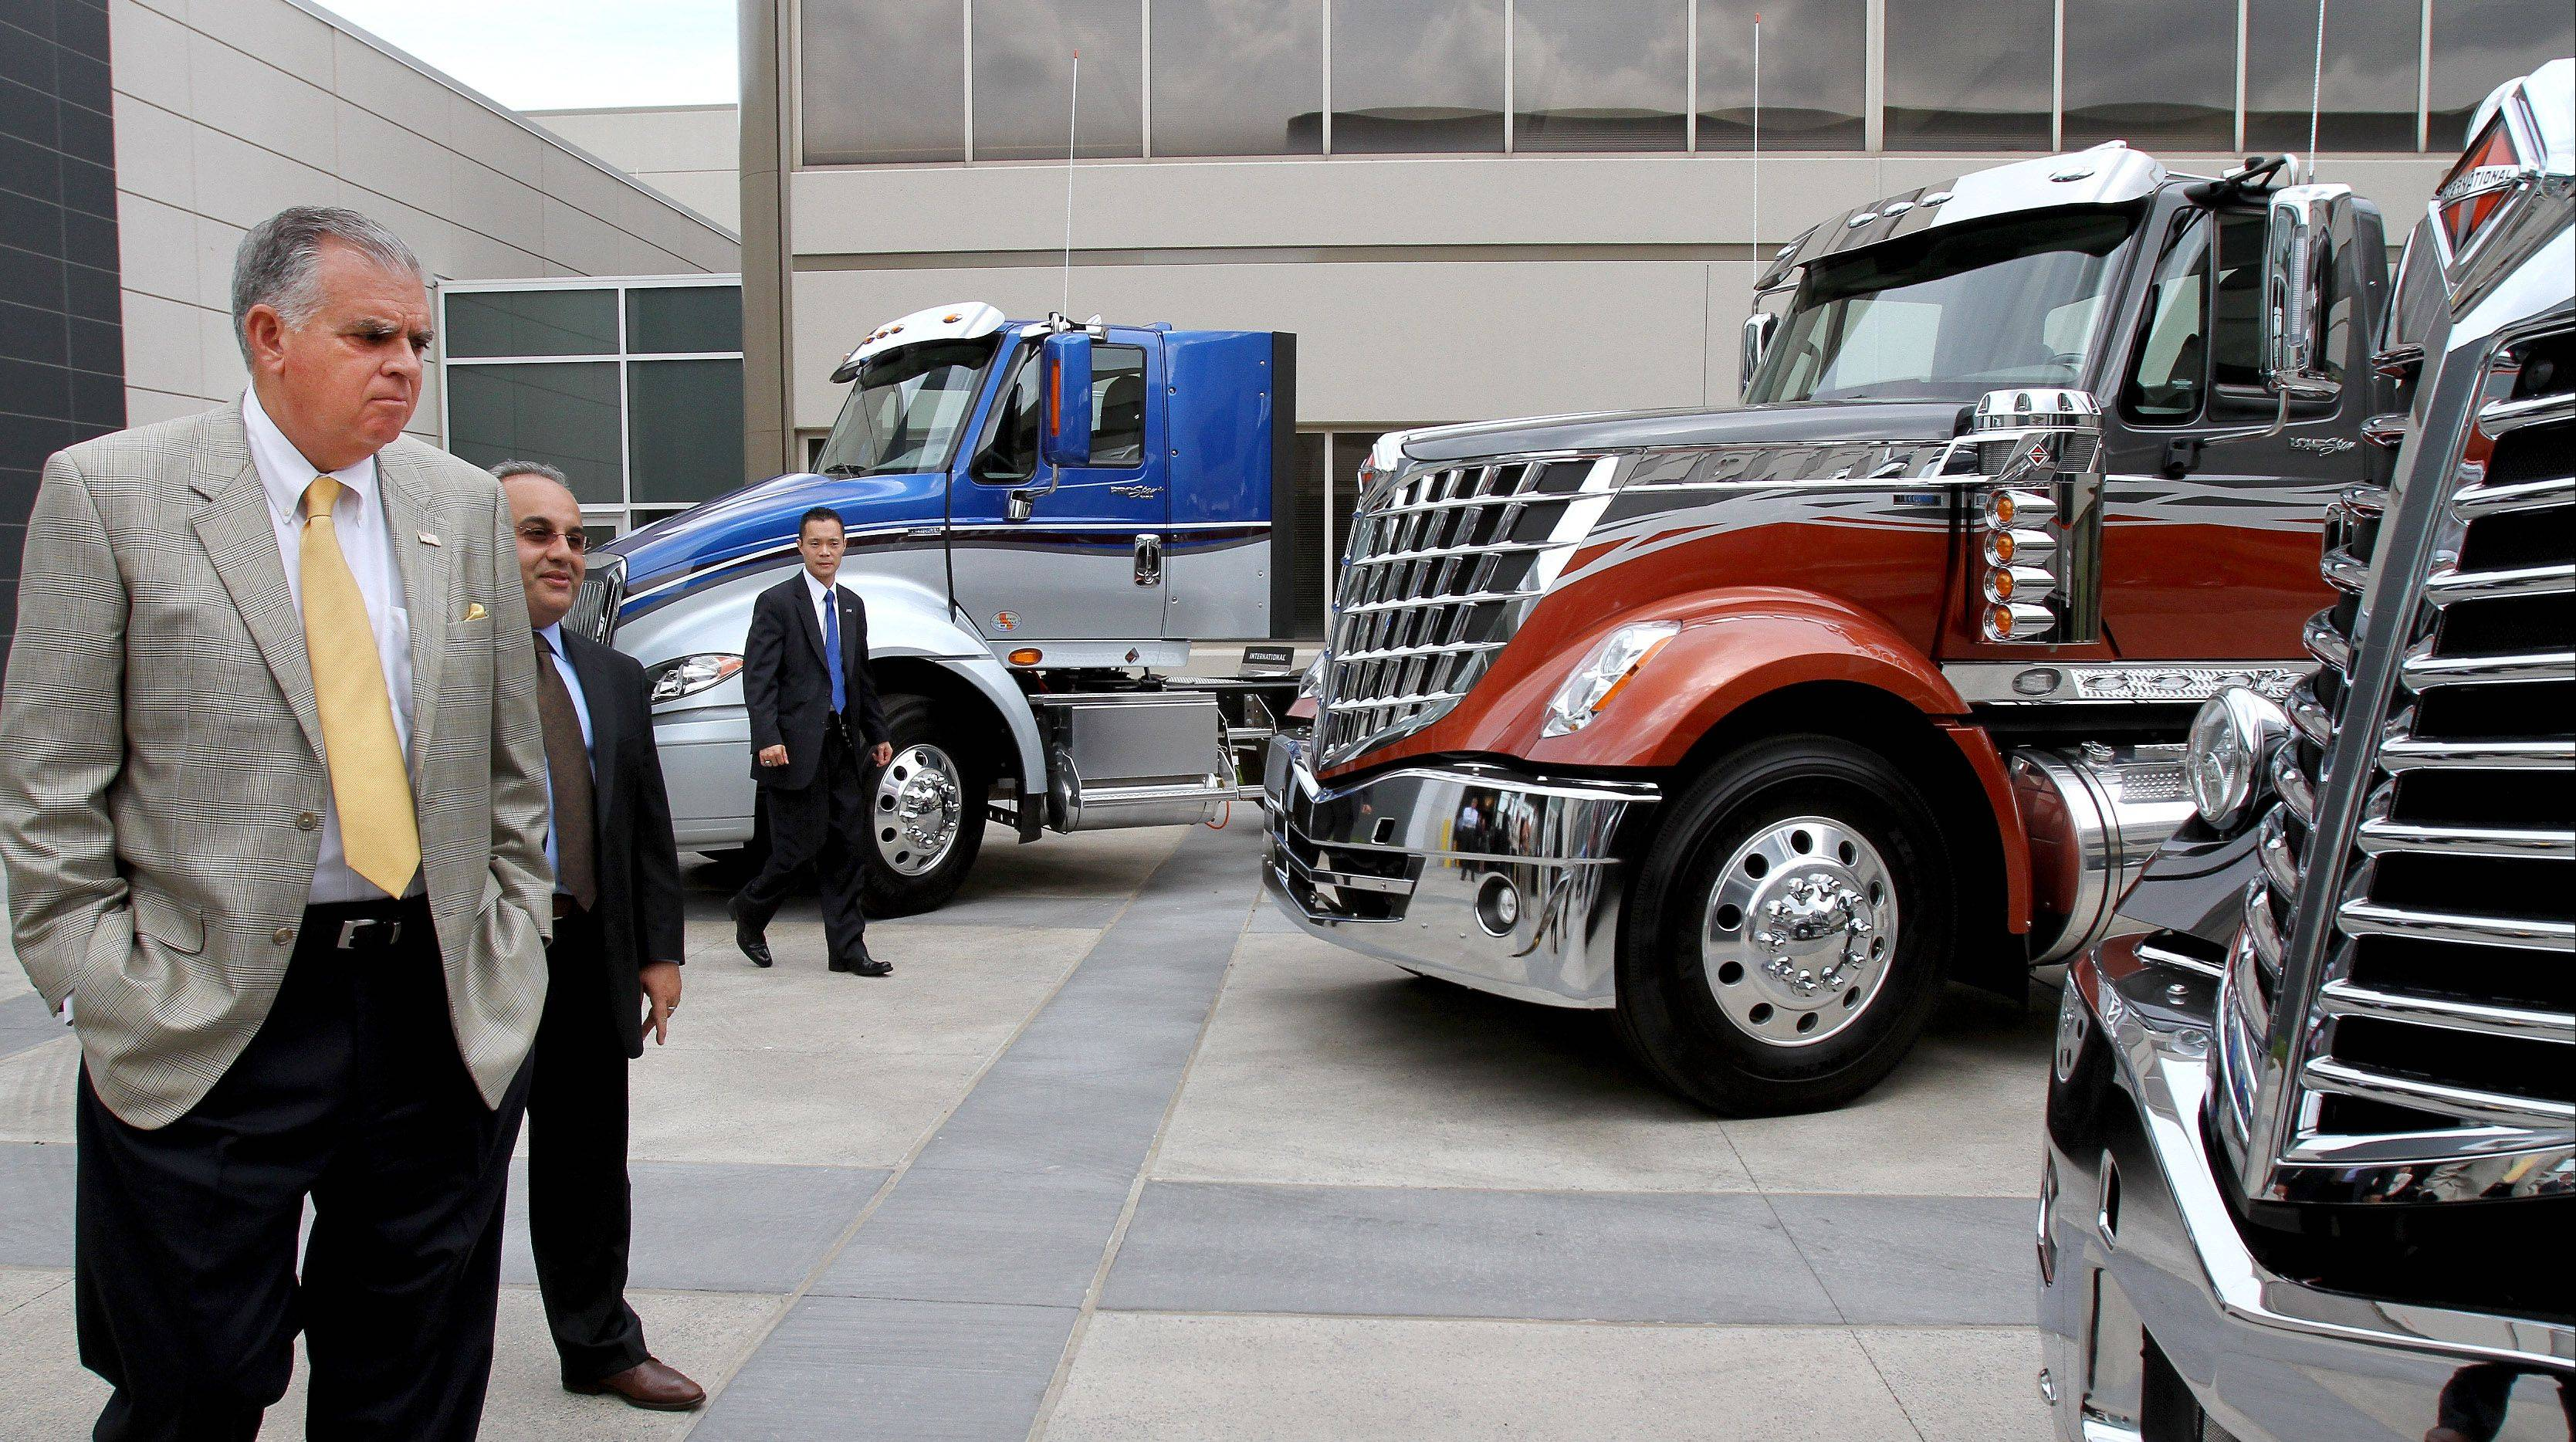 U.S. Transportation Secretary Ray LaHood, left, checks out the latest inventory of trucks as he visits Navistar in Lisle on Monday. To his right is Ramin Younessi, group vice president of product development.